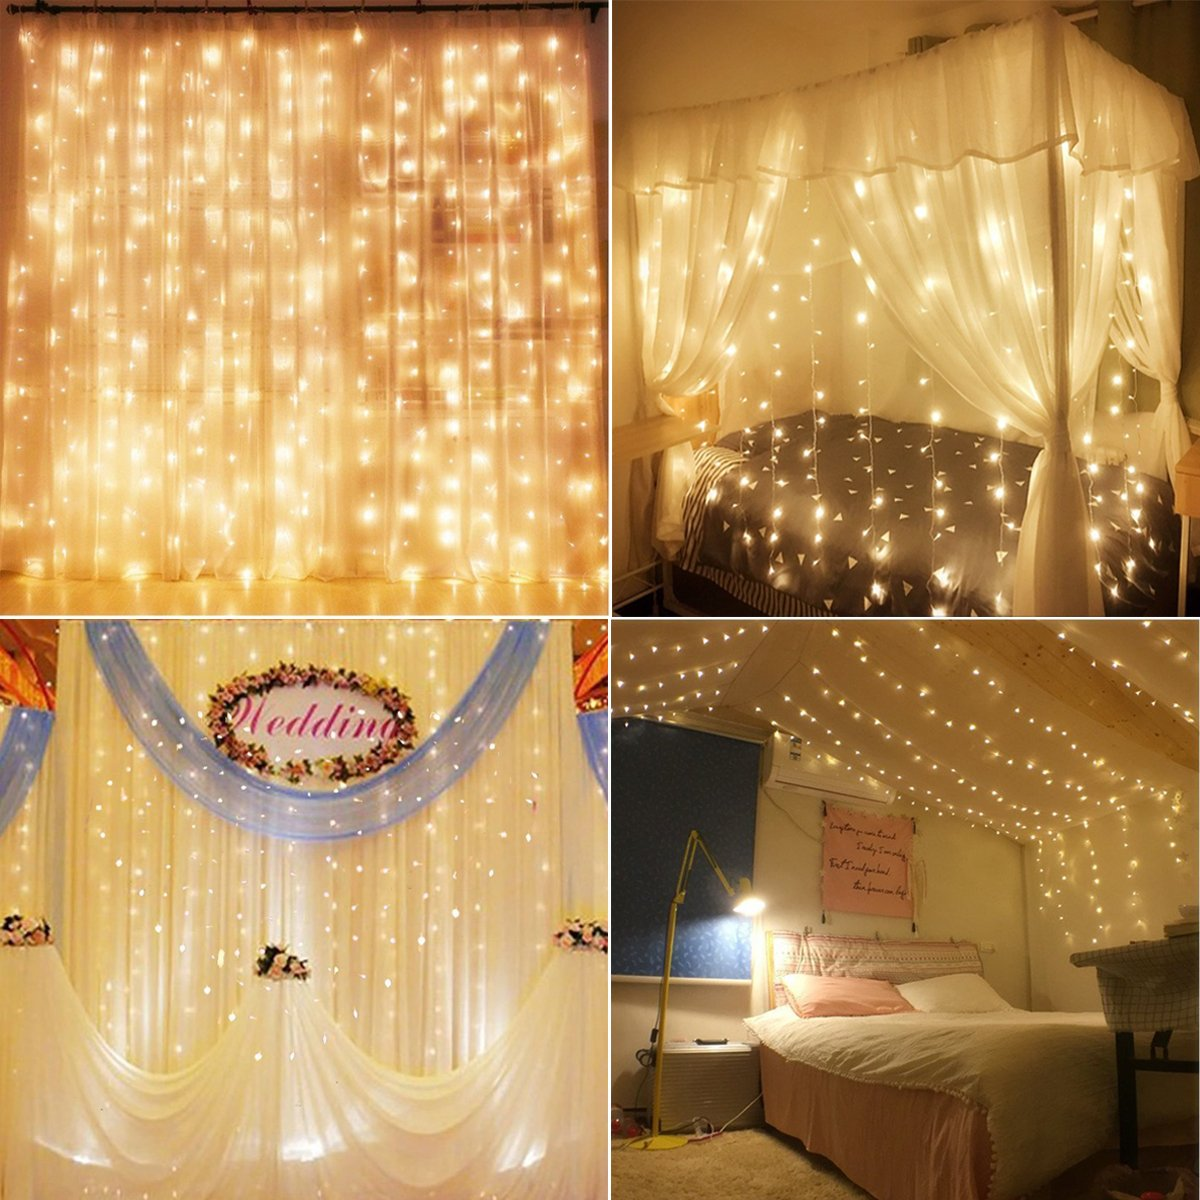 Decute Curtain Lights, 9.8 X 9.8ft 306 LED Starry Fairy Icicle Light For Wedding, Bedroom, Bed Canopy, Garden, Patio, Outdoor Indoor (Warm white) (Warm Curtain Lights)